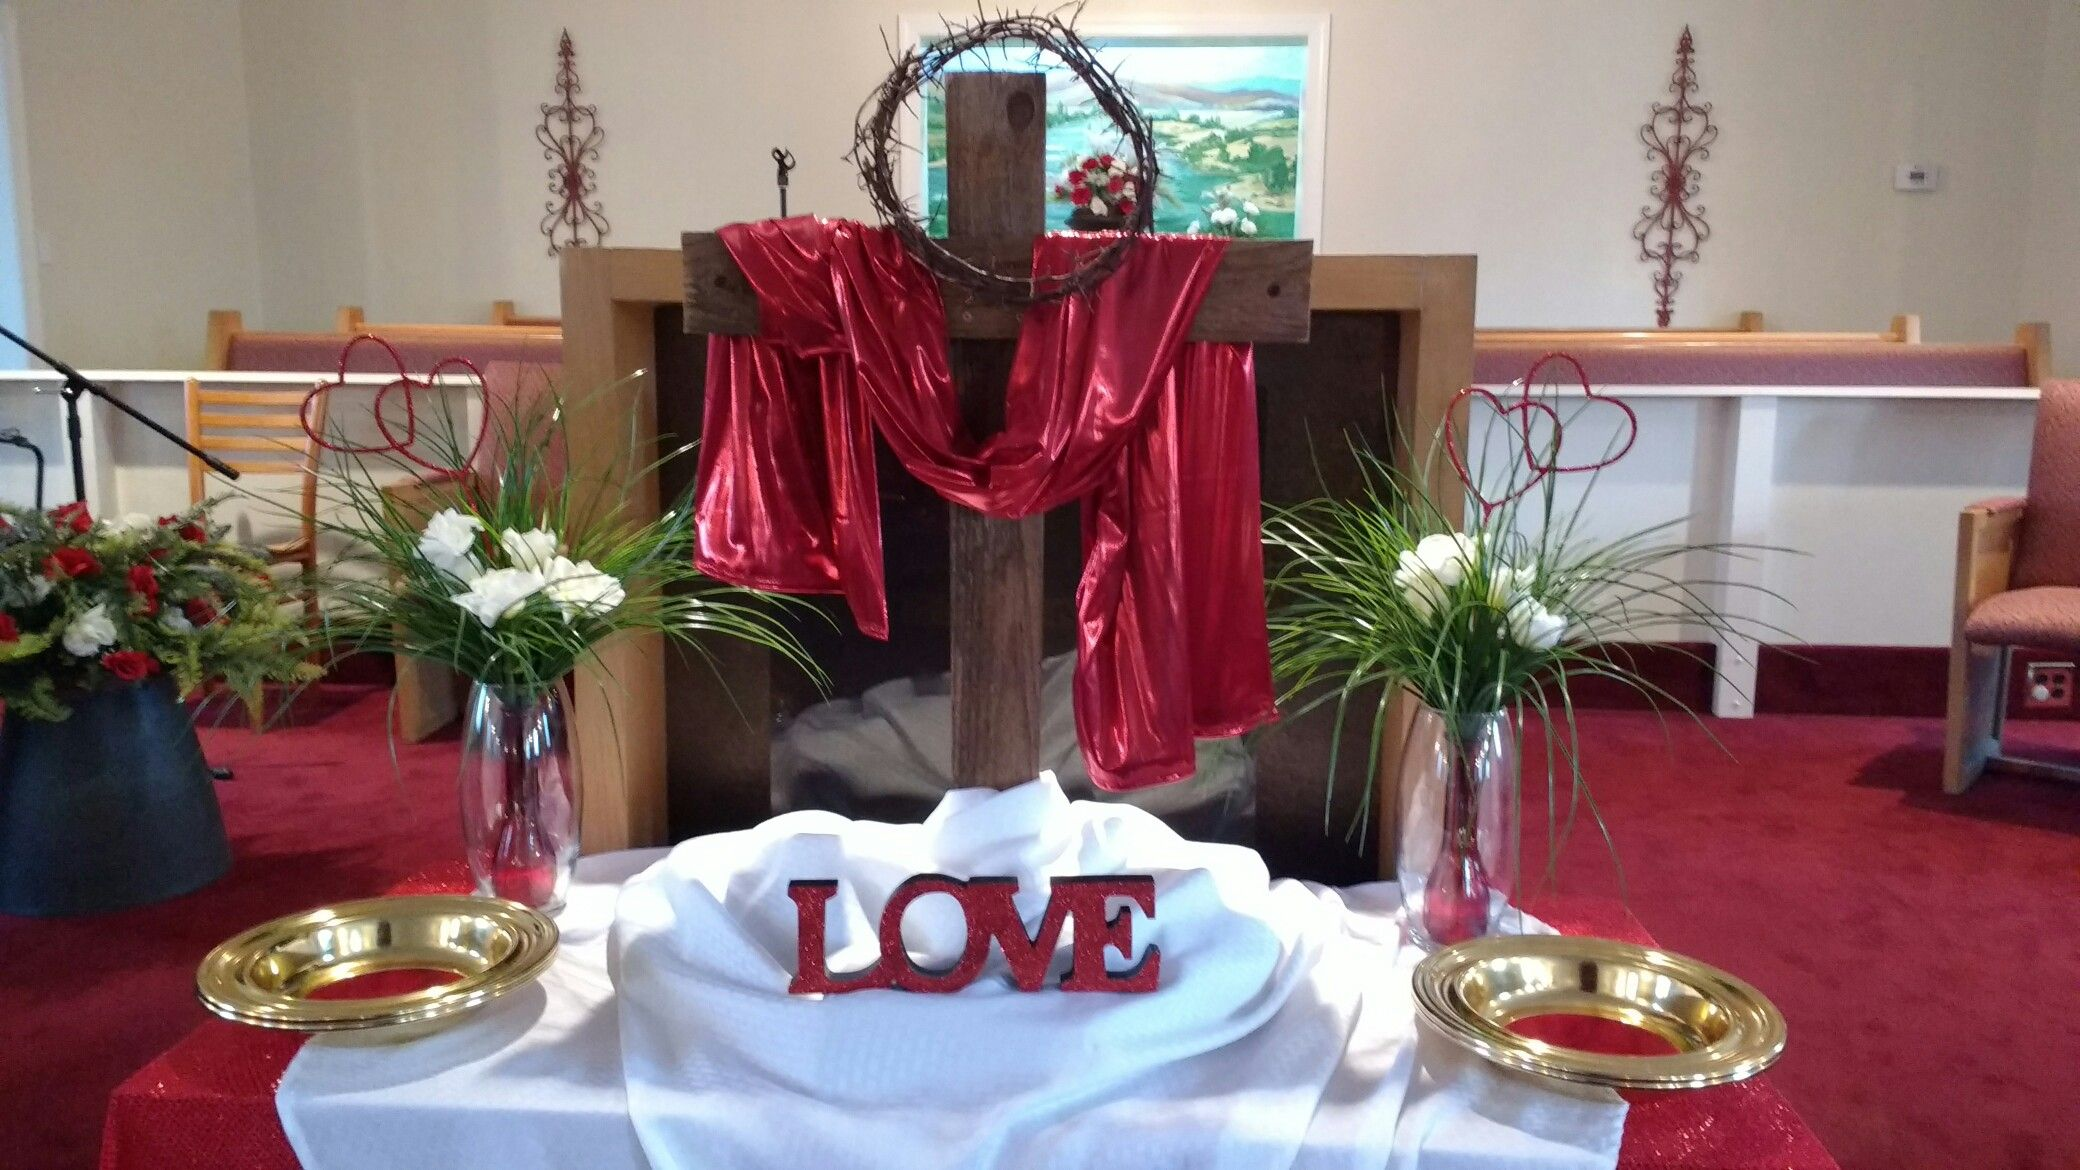 Red Church Altarscape For Valentine S Day Church Valentines Church Altar Decorations Altar Decorations